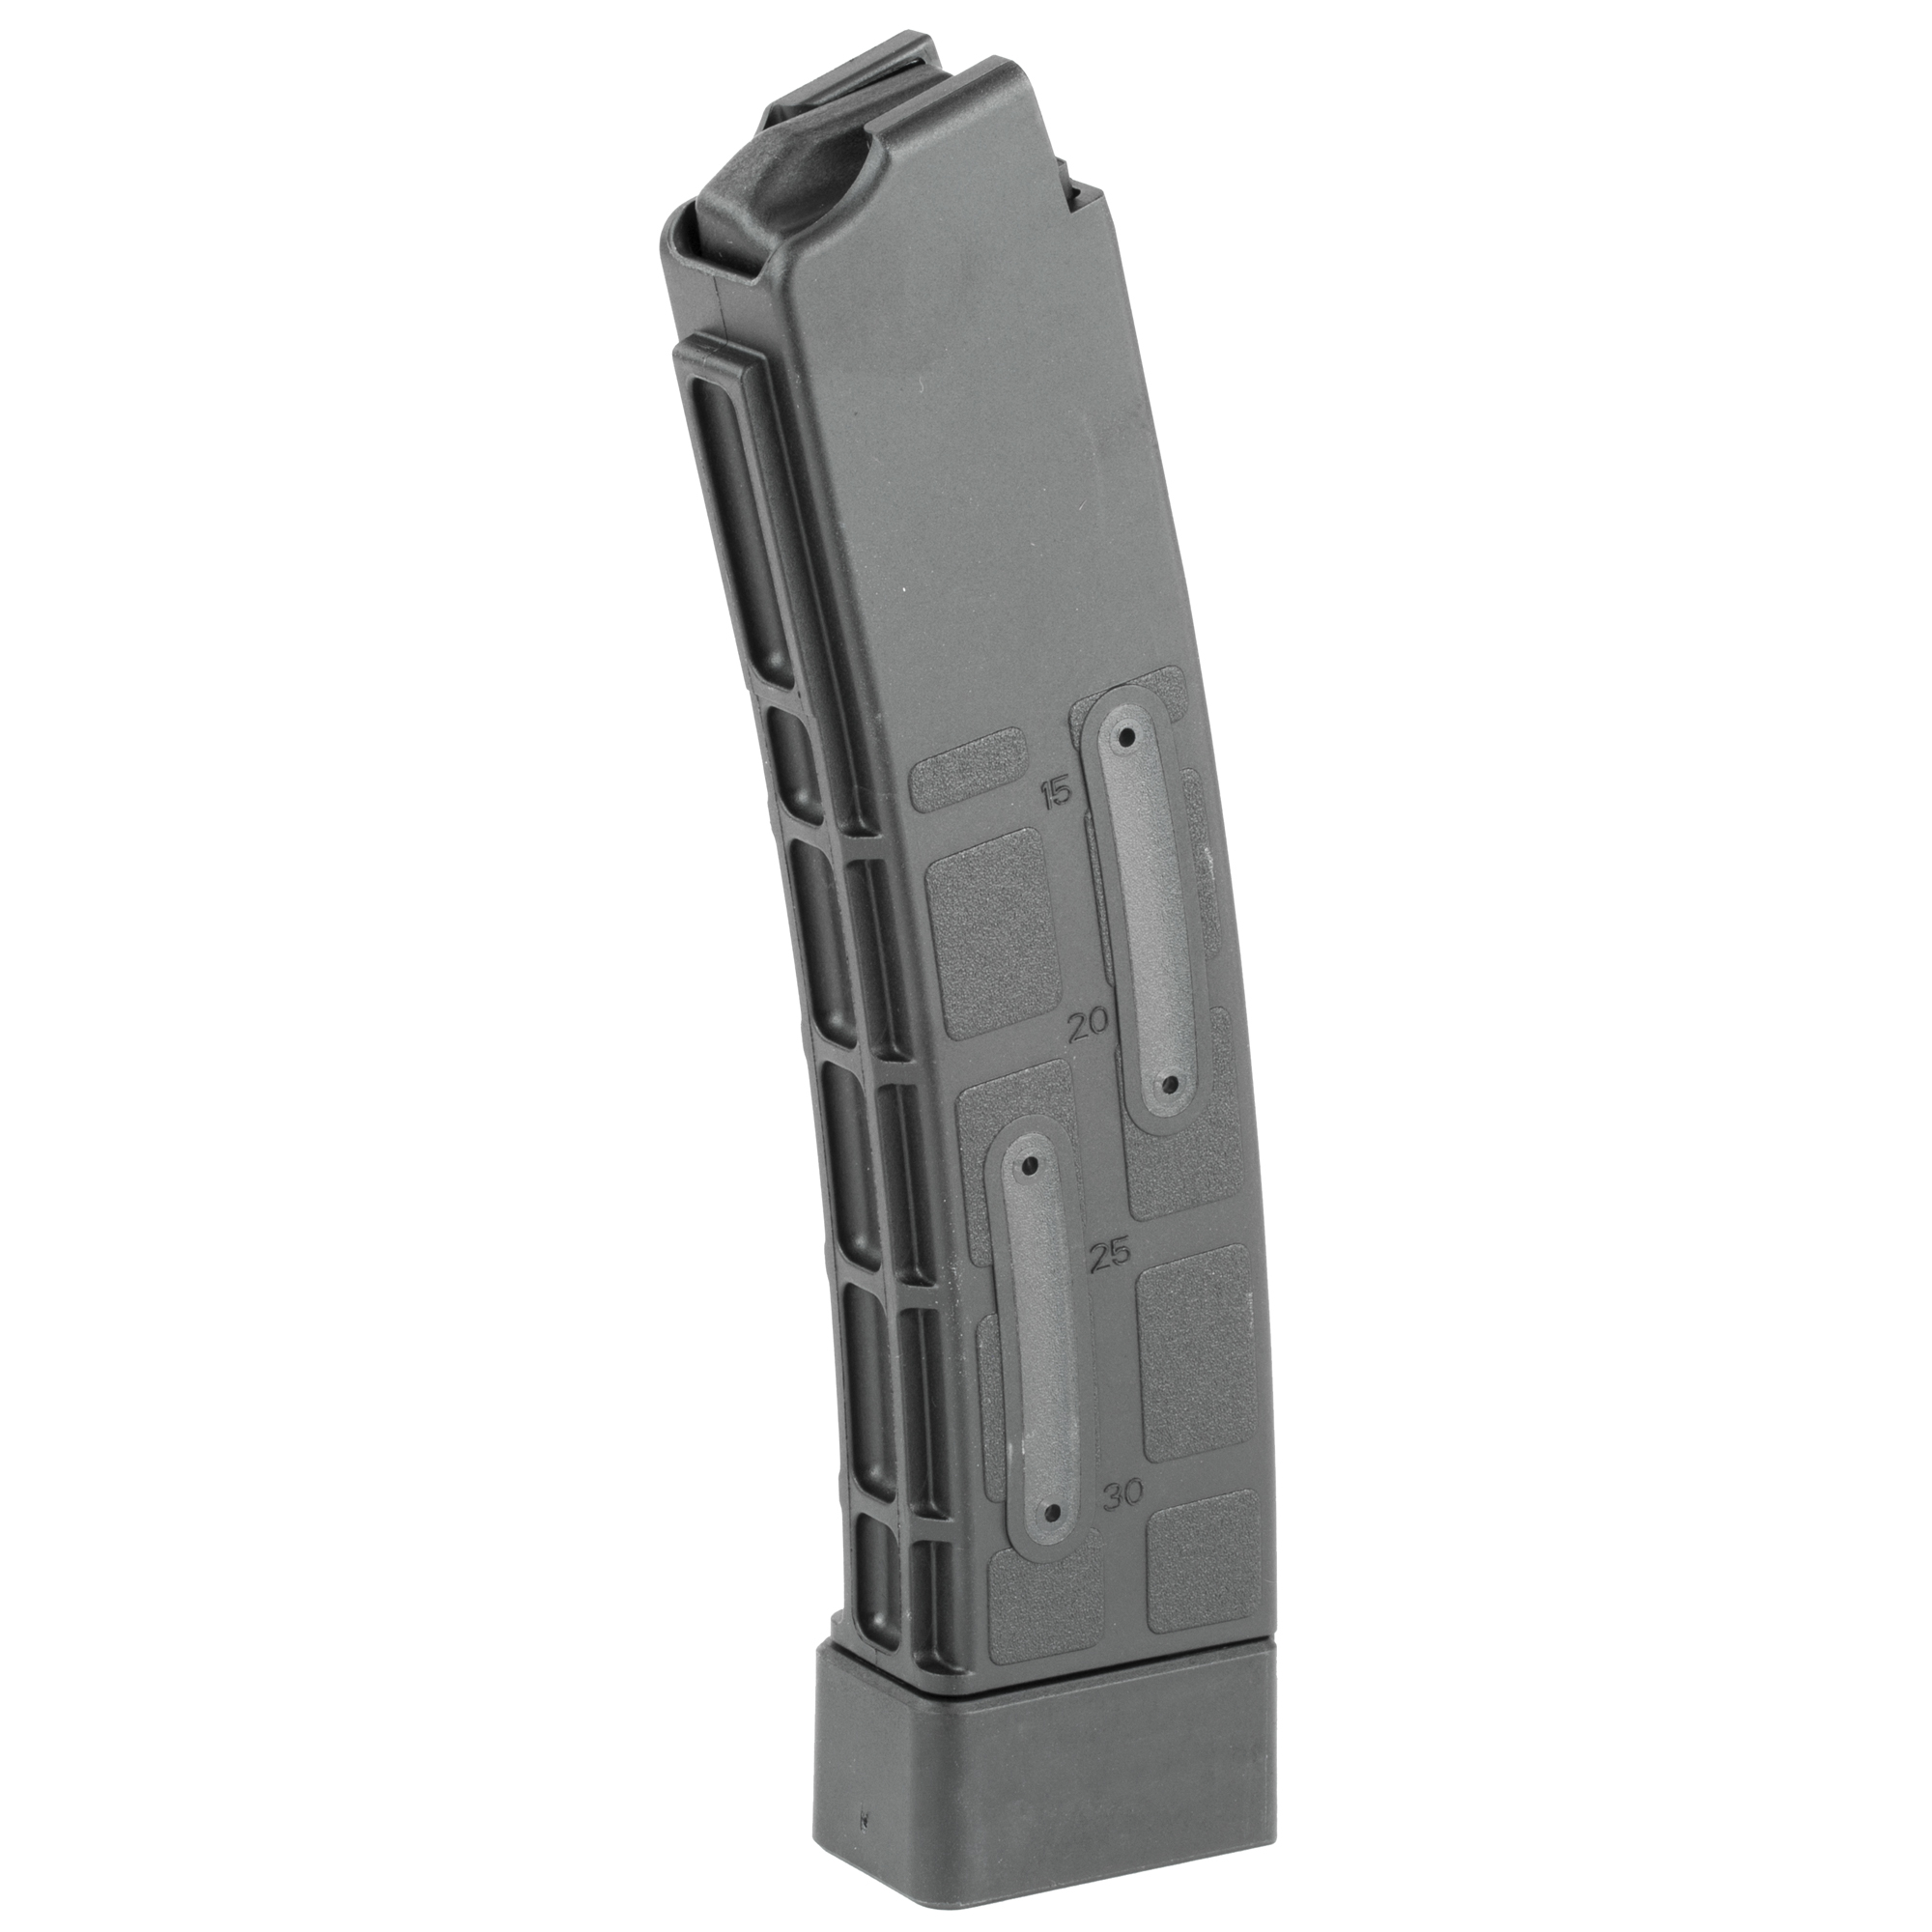 """This CZ factory OEM magazine features polymer construction"""" windows with round count numbers"""" and is designed for reliable operation in the CZ Scorpion."""